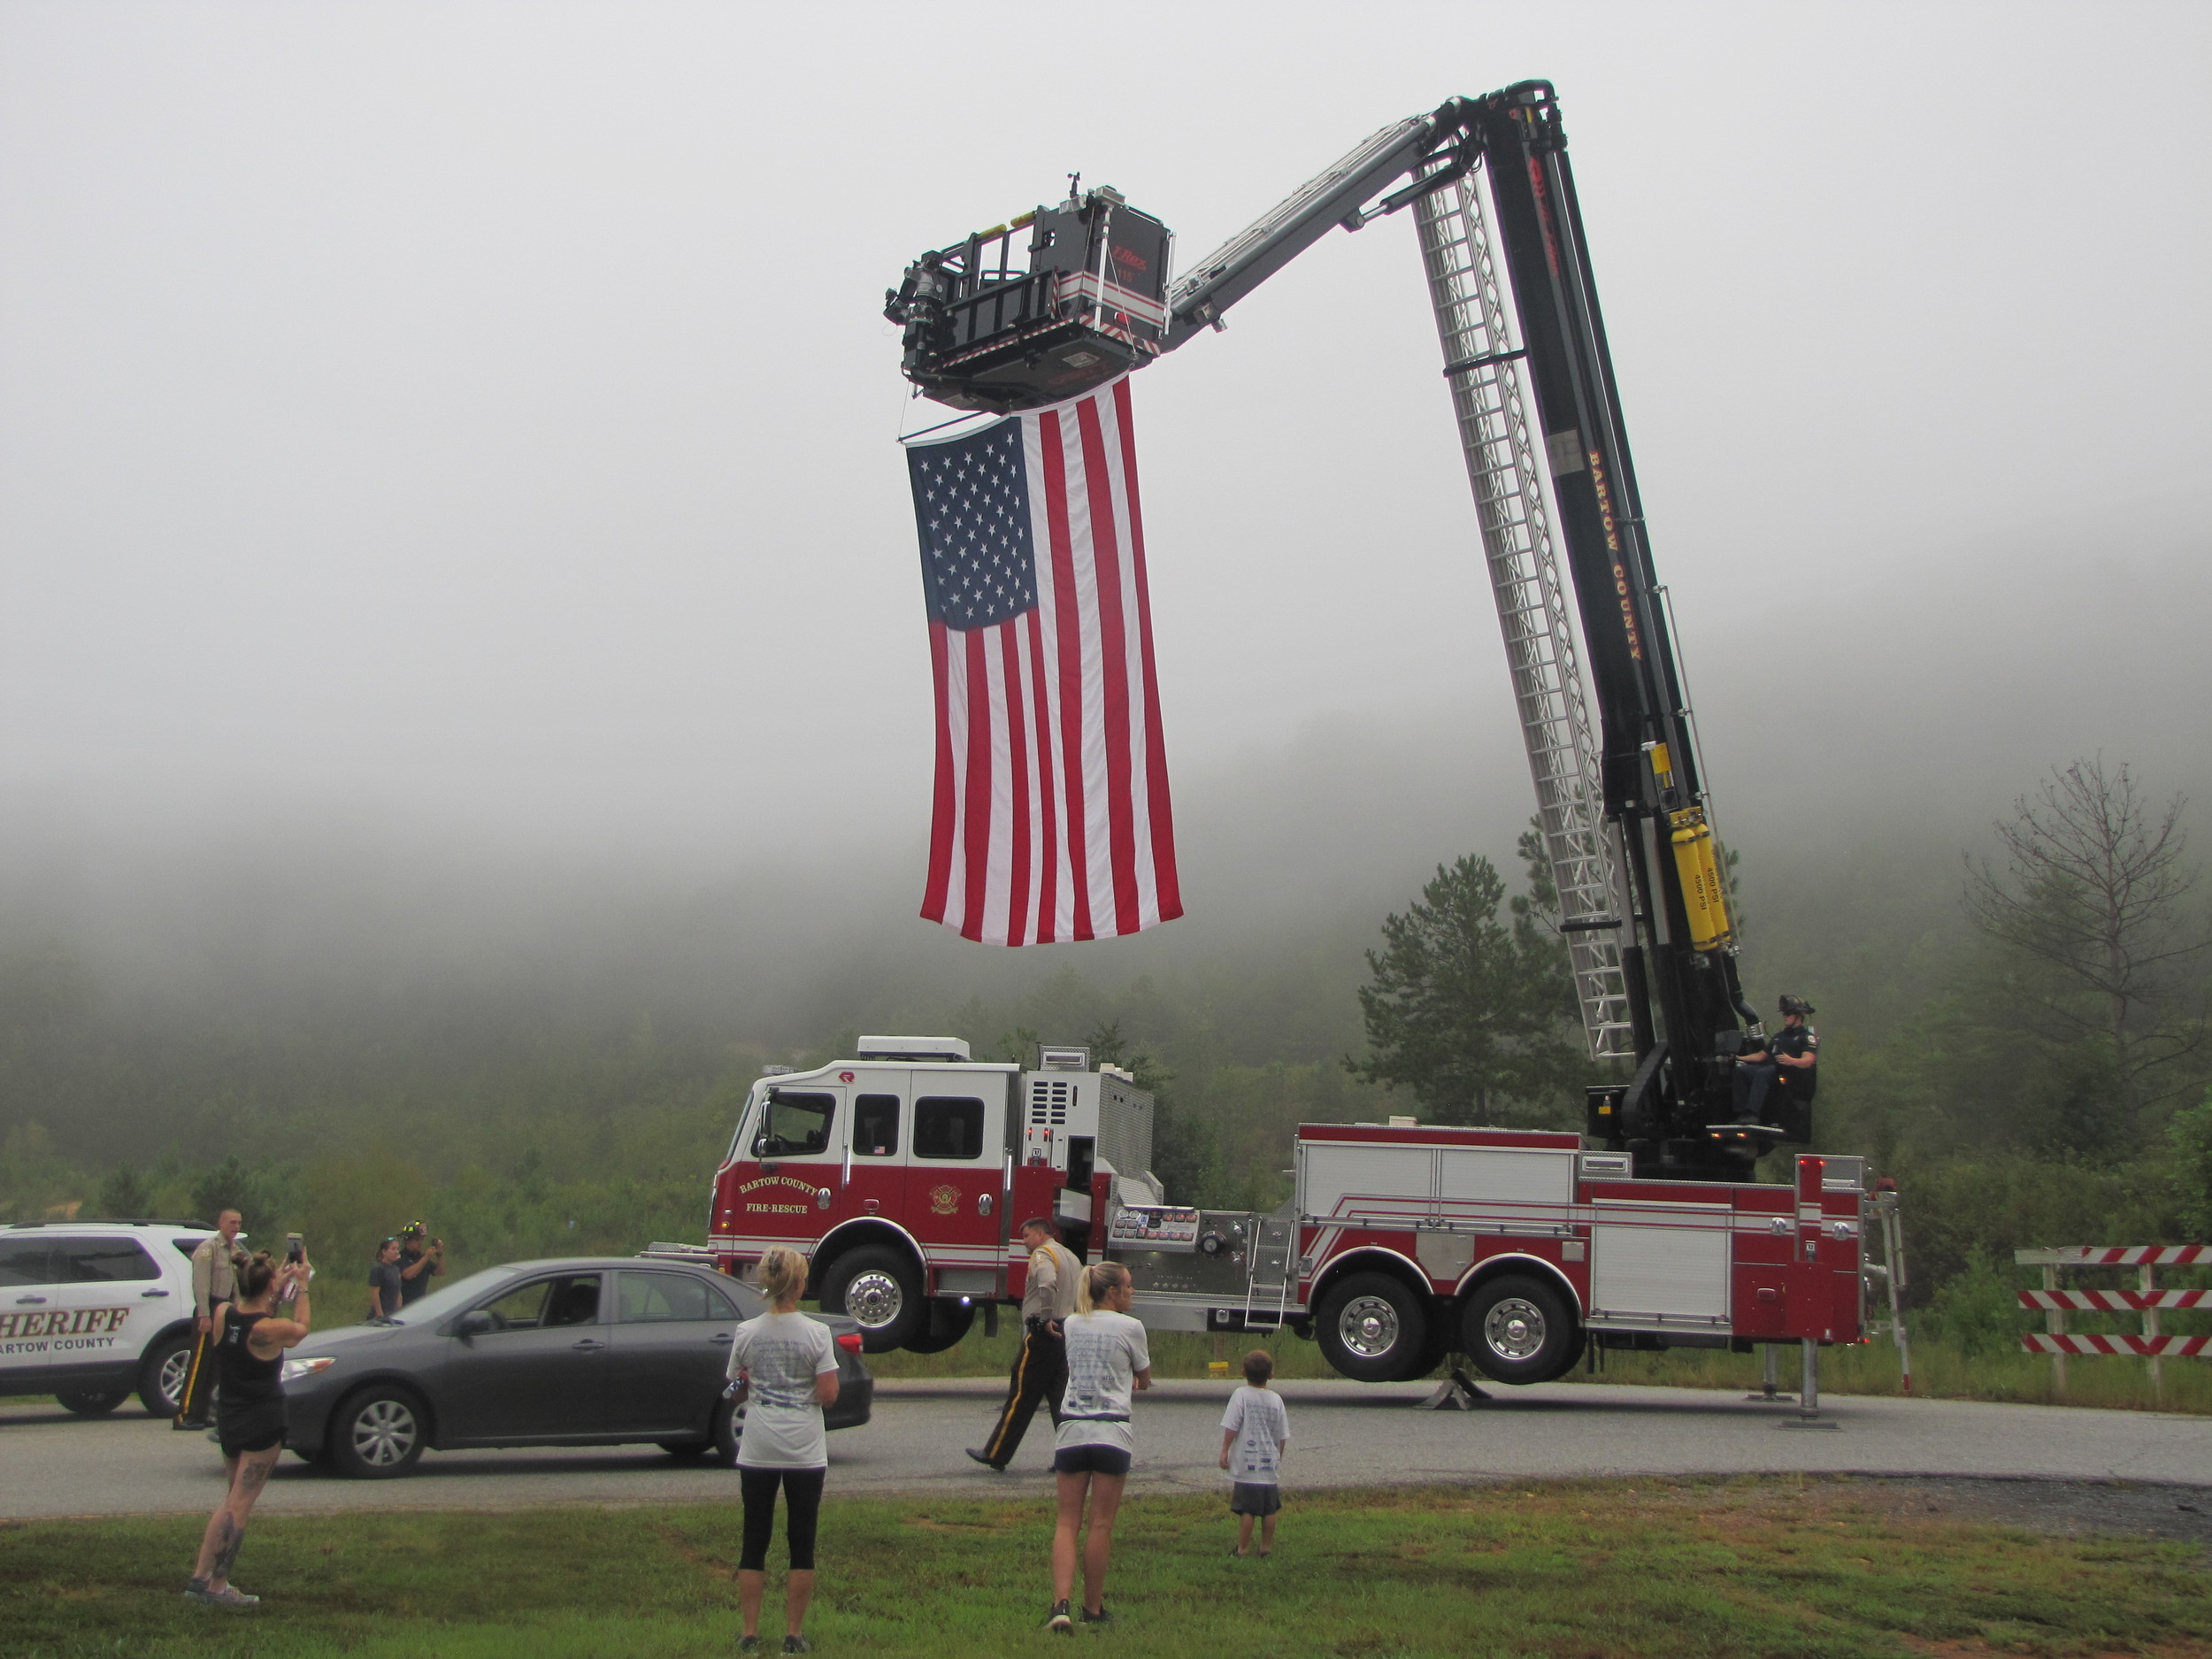 Bartow County firefighters hoist the American flag at Tuesday's March to the Mountain event in Cartersville.